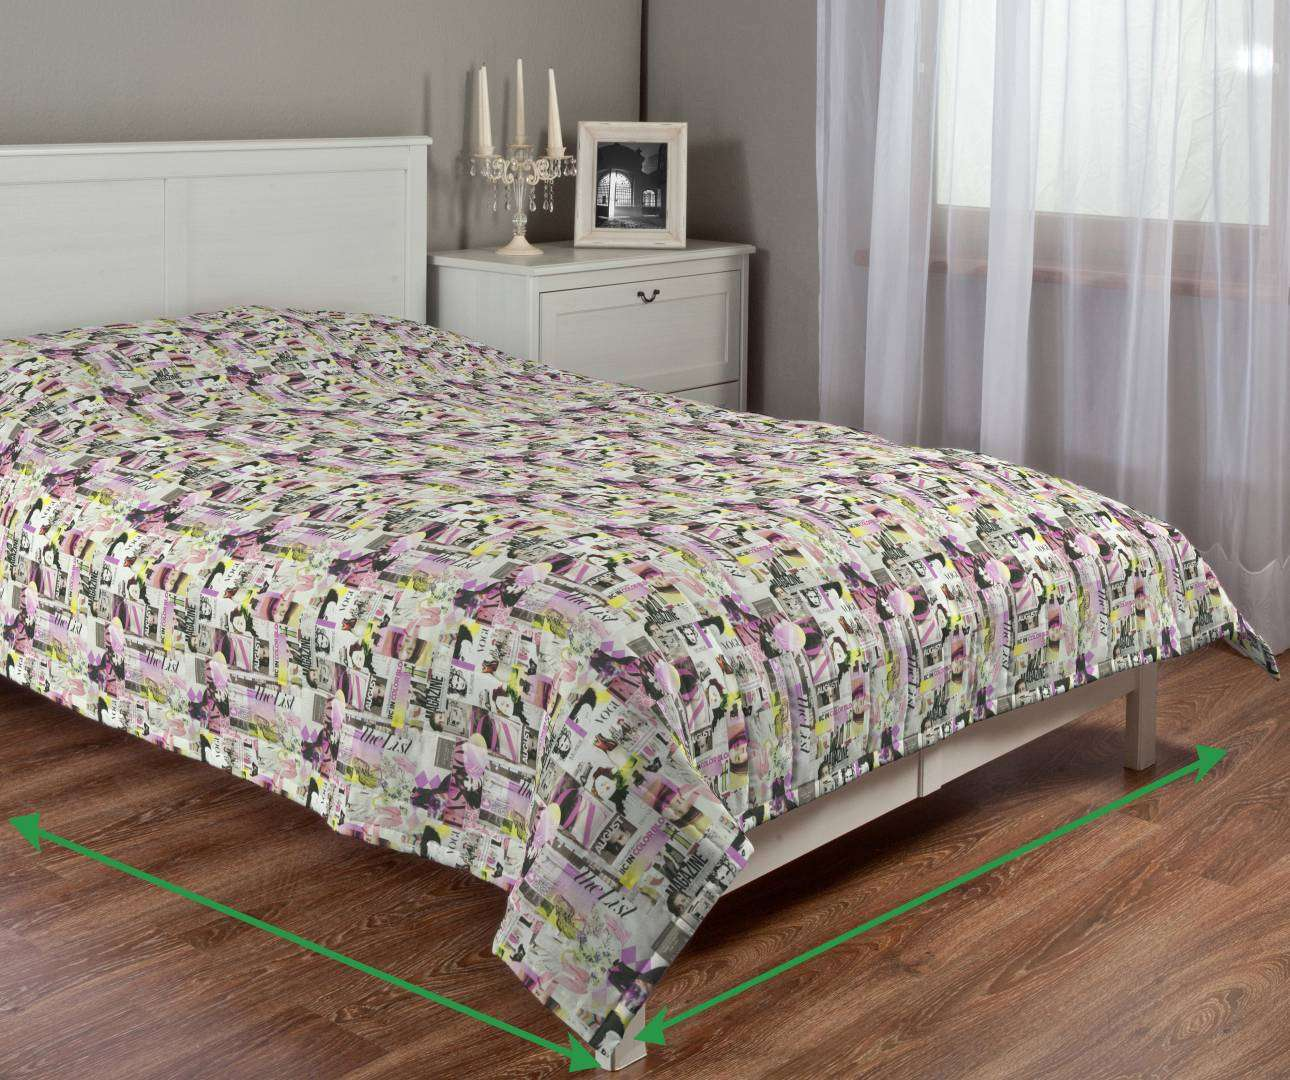 Quilted throw (vertical quilt pattern) in collection Freestyle, fabric: 135-15